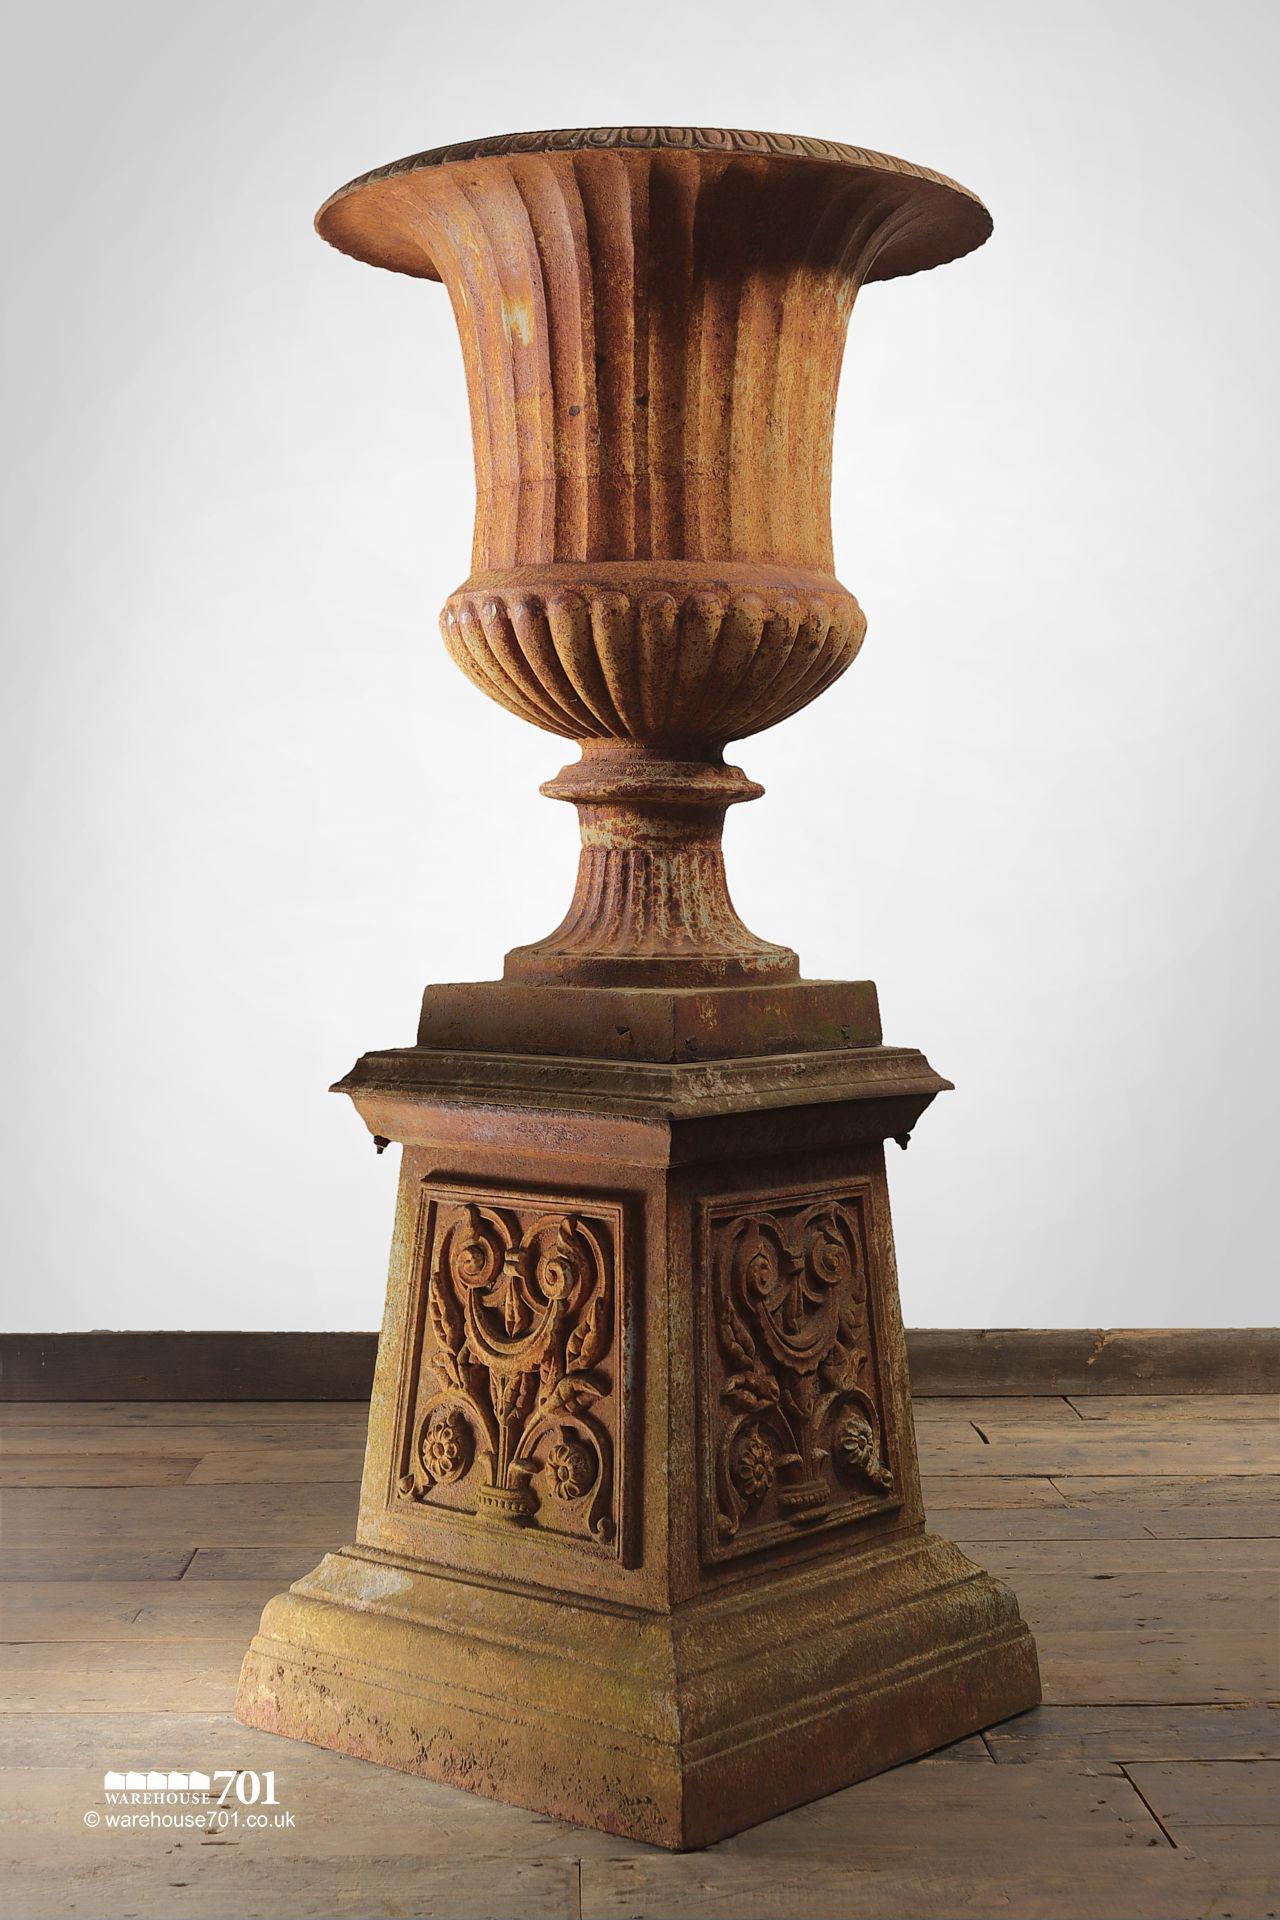 Pair of Aged Cast Iron Urns on Plinths #3